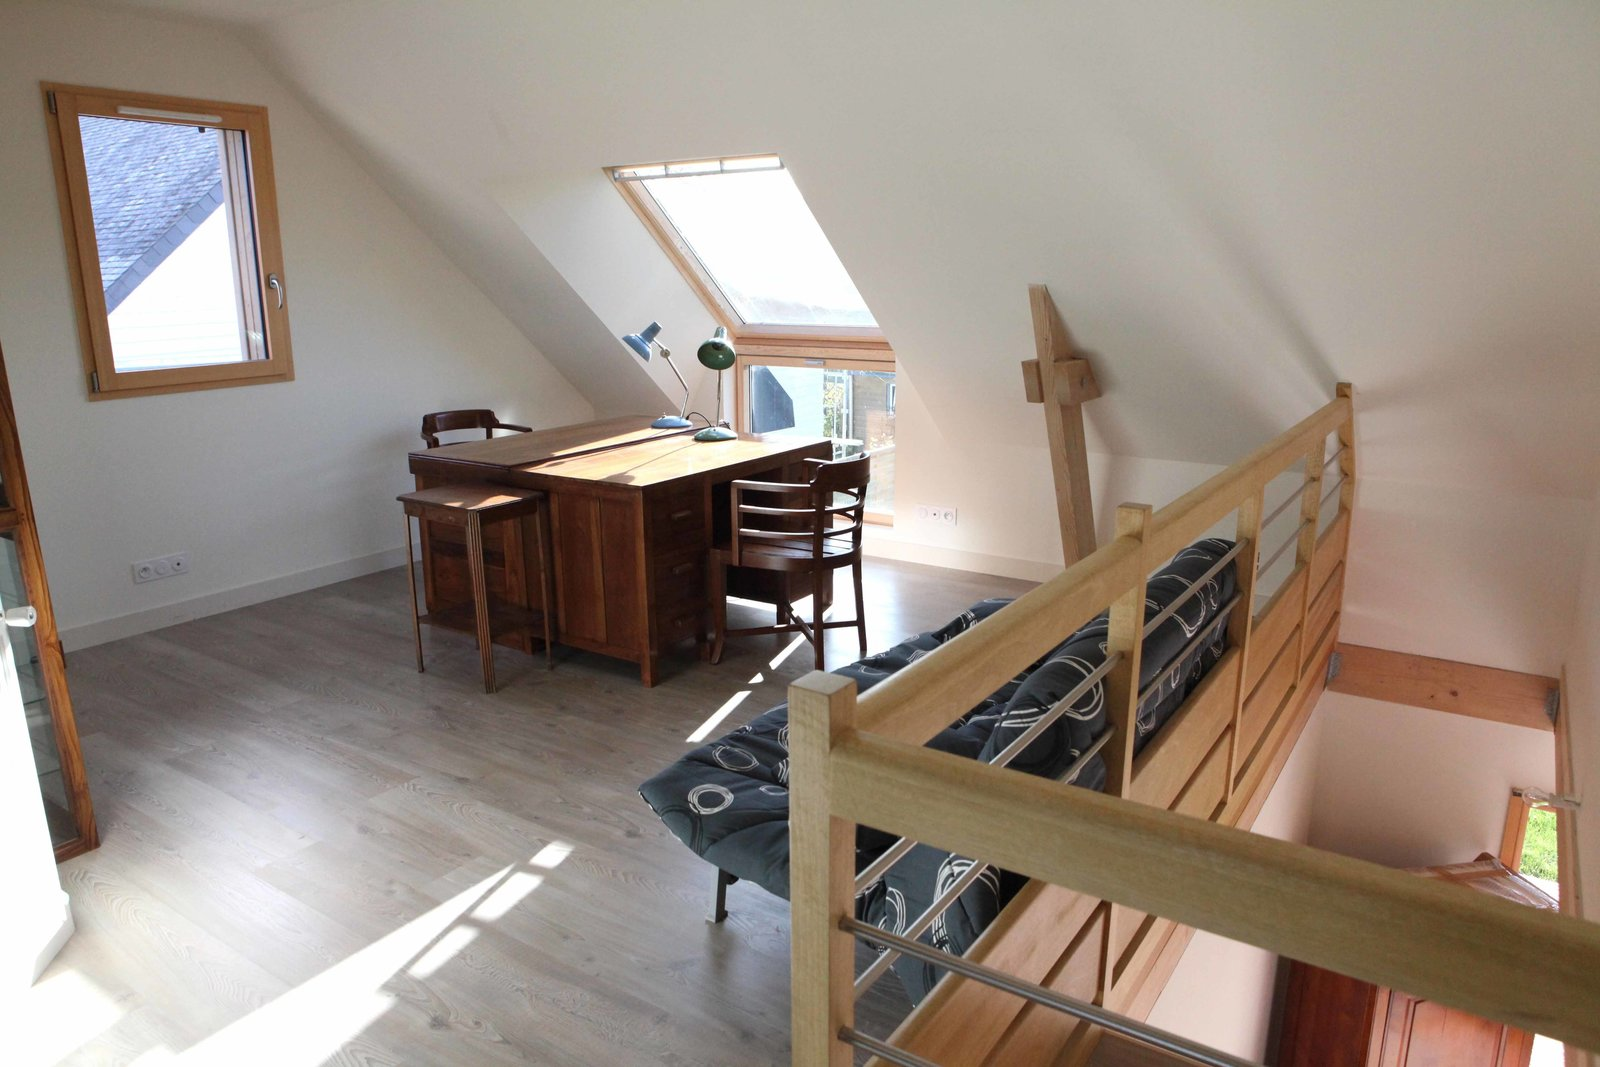 The building's interior is still a work in progress, but the residents plan to incorporate as many natural wood elements and low-impact design details as possible as they furnish. The loft's floor will eventually be finished with floating parquet.  Photo 4 of 7 in A Cozy, Well-Sealed Cottage in Northwest France Goes Green